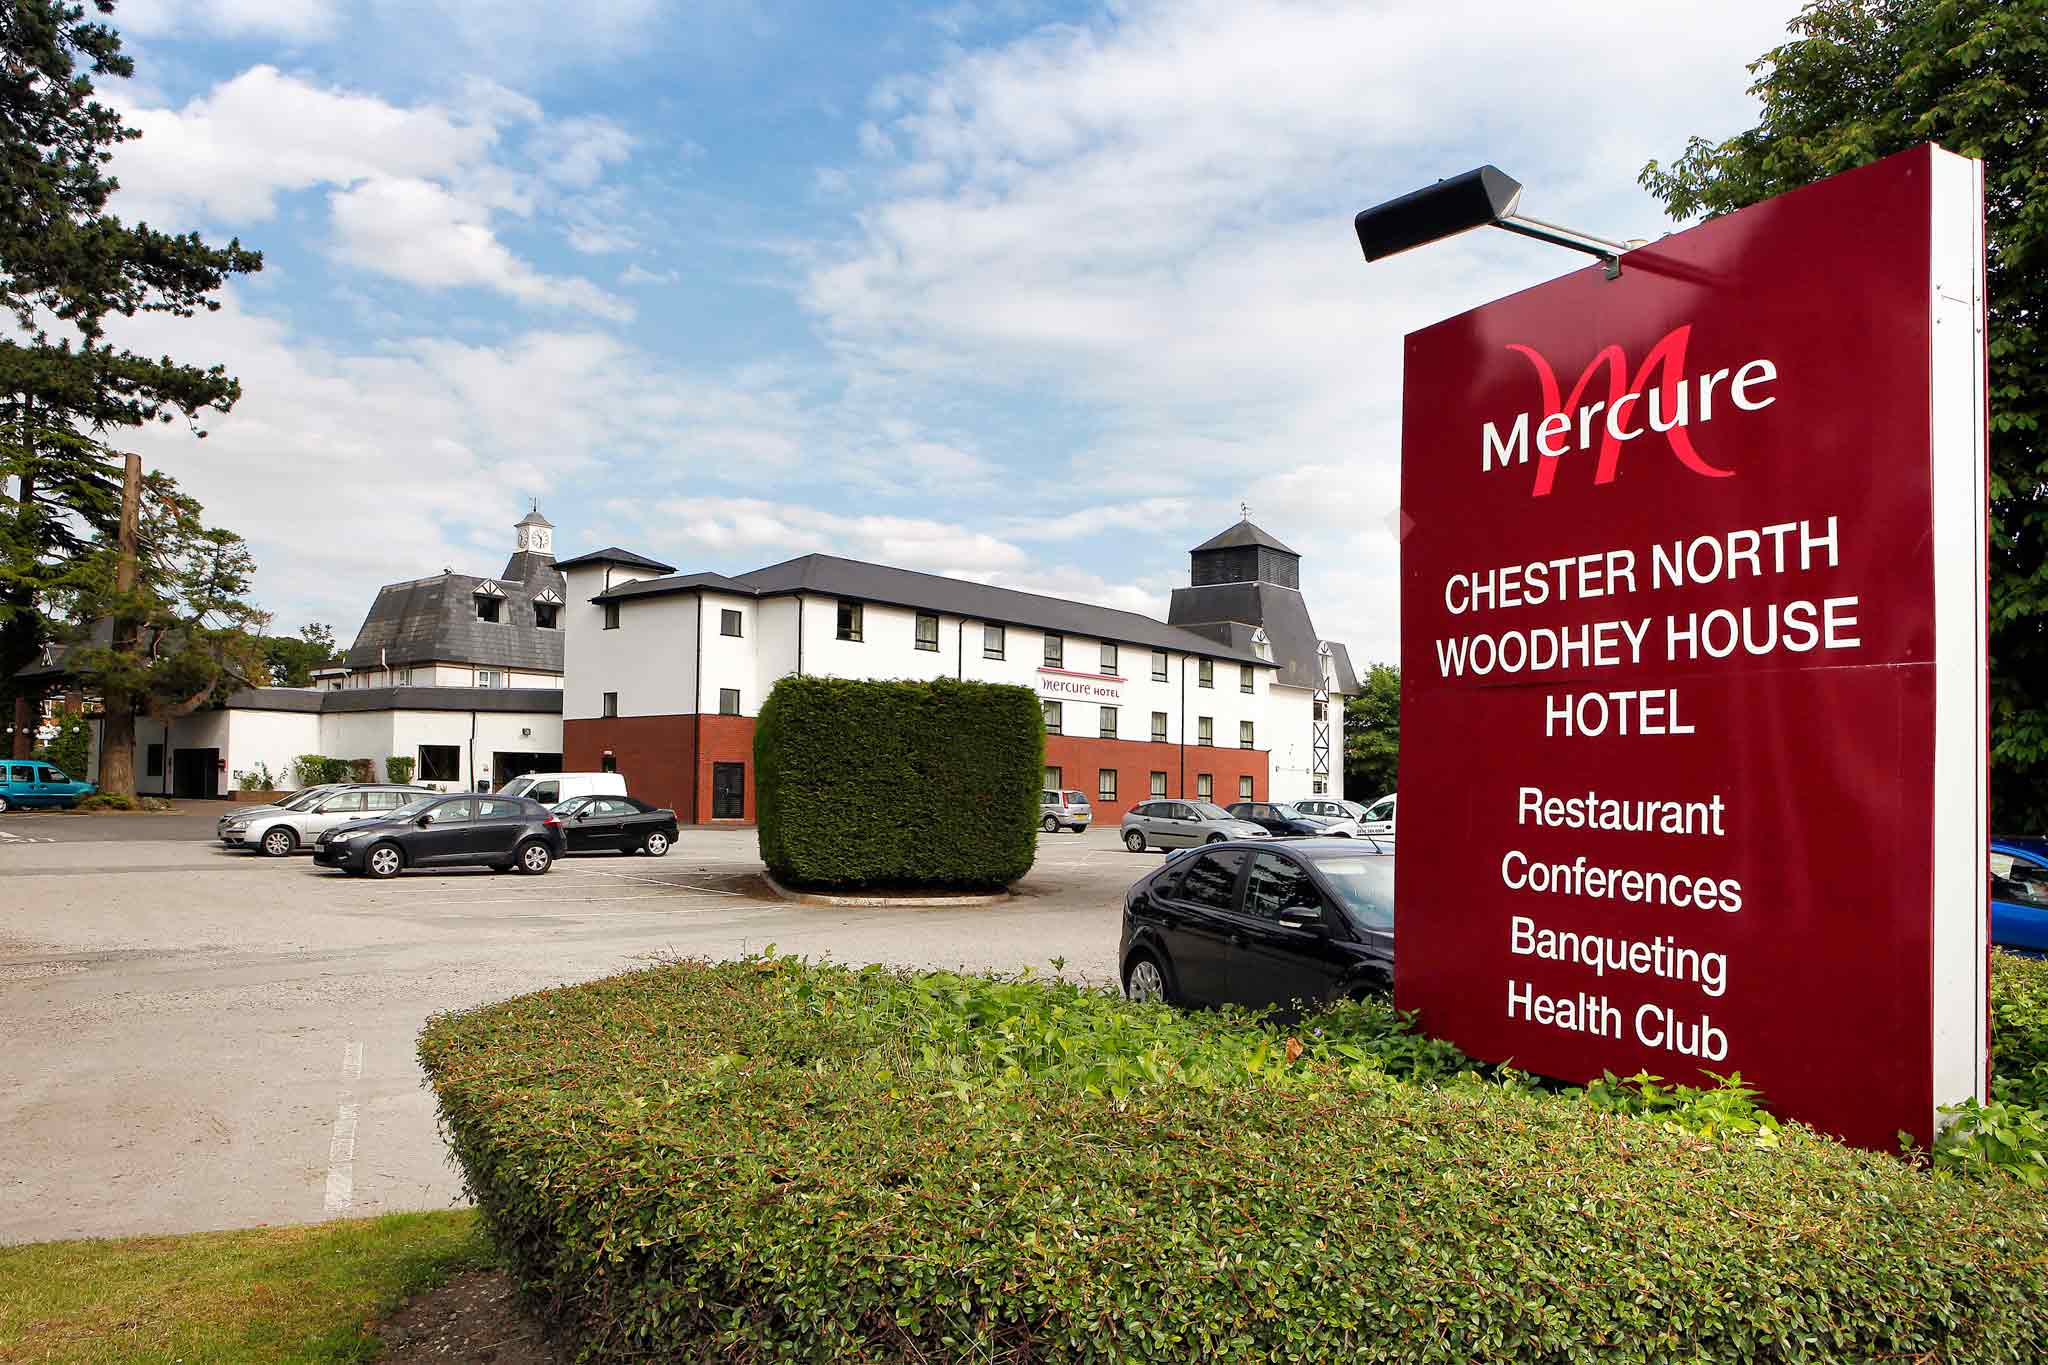 Hotel – Mercure Chester North Woodhey House Hotel